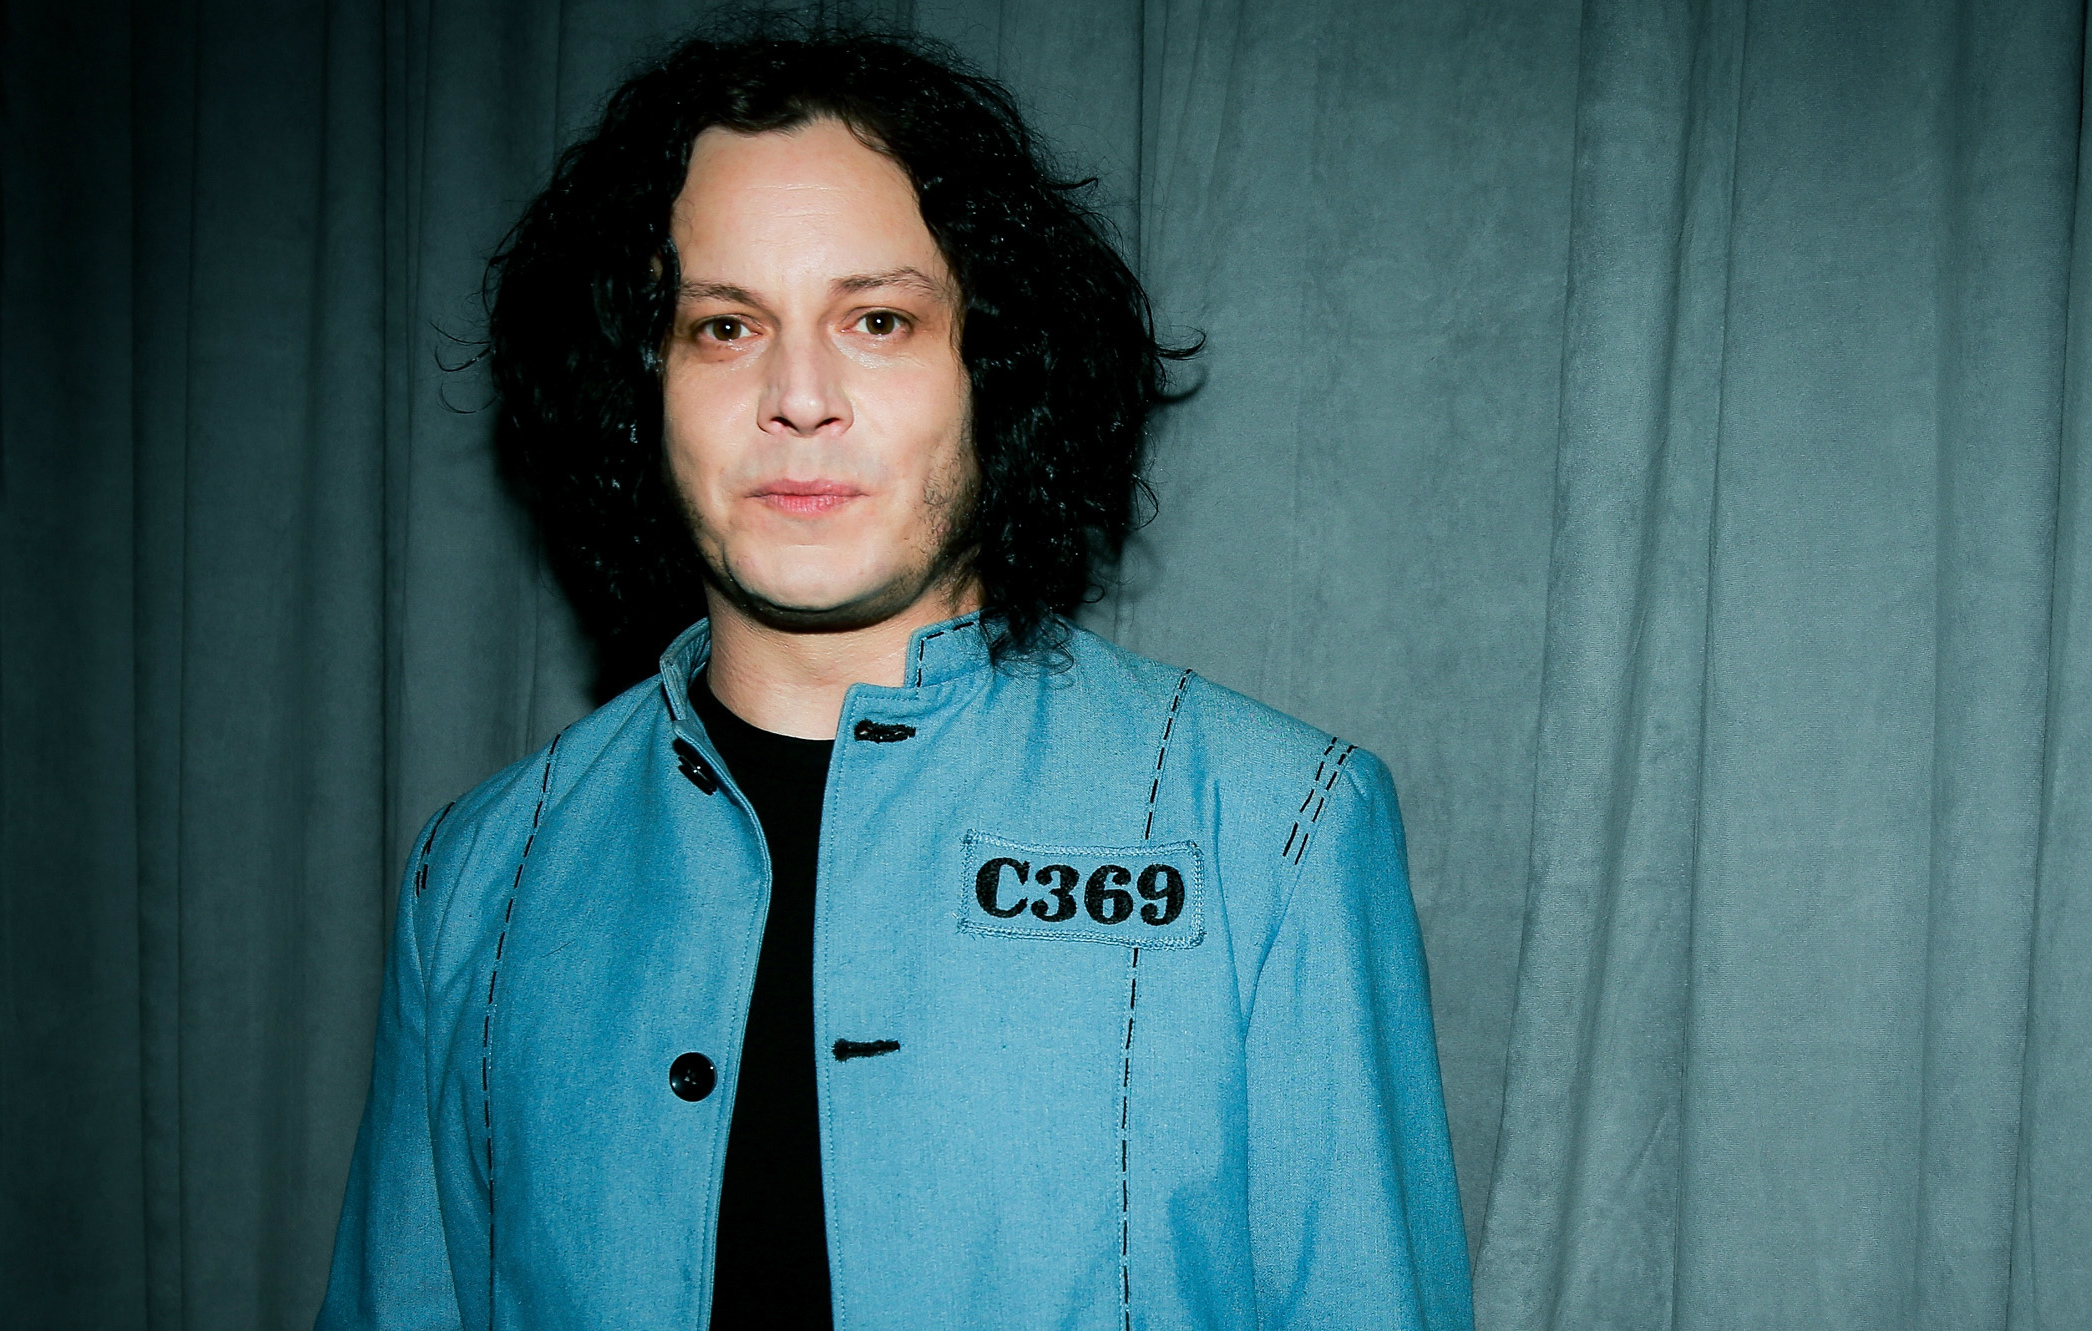 NME Festival blog: Jack White donates $30,000 to restore iconic house from 1980s film 'The Outsiders'